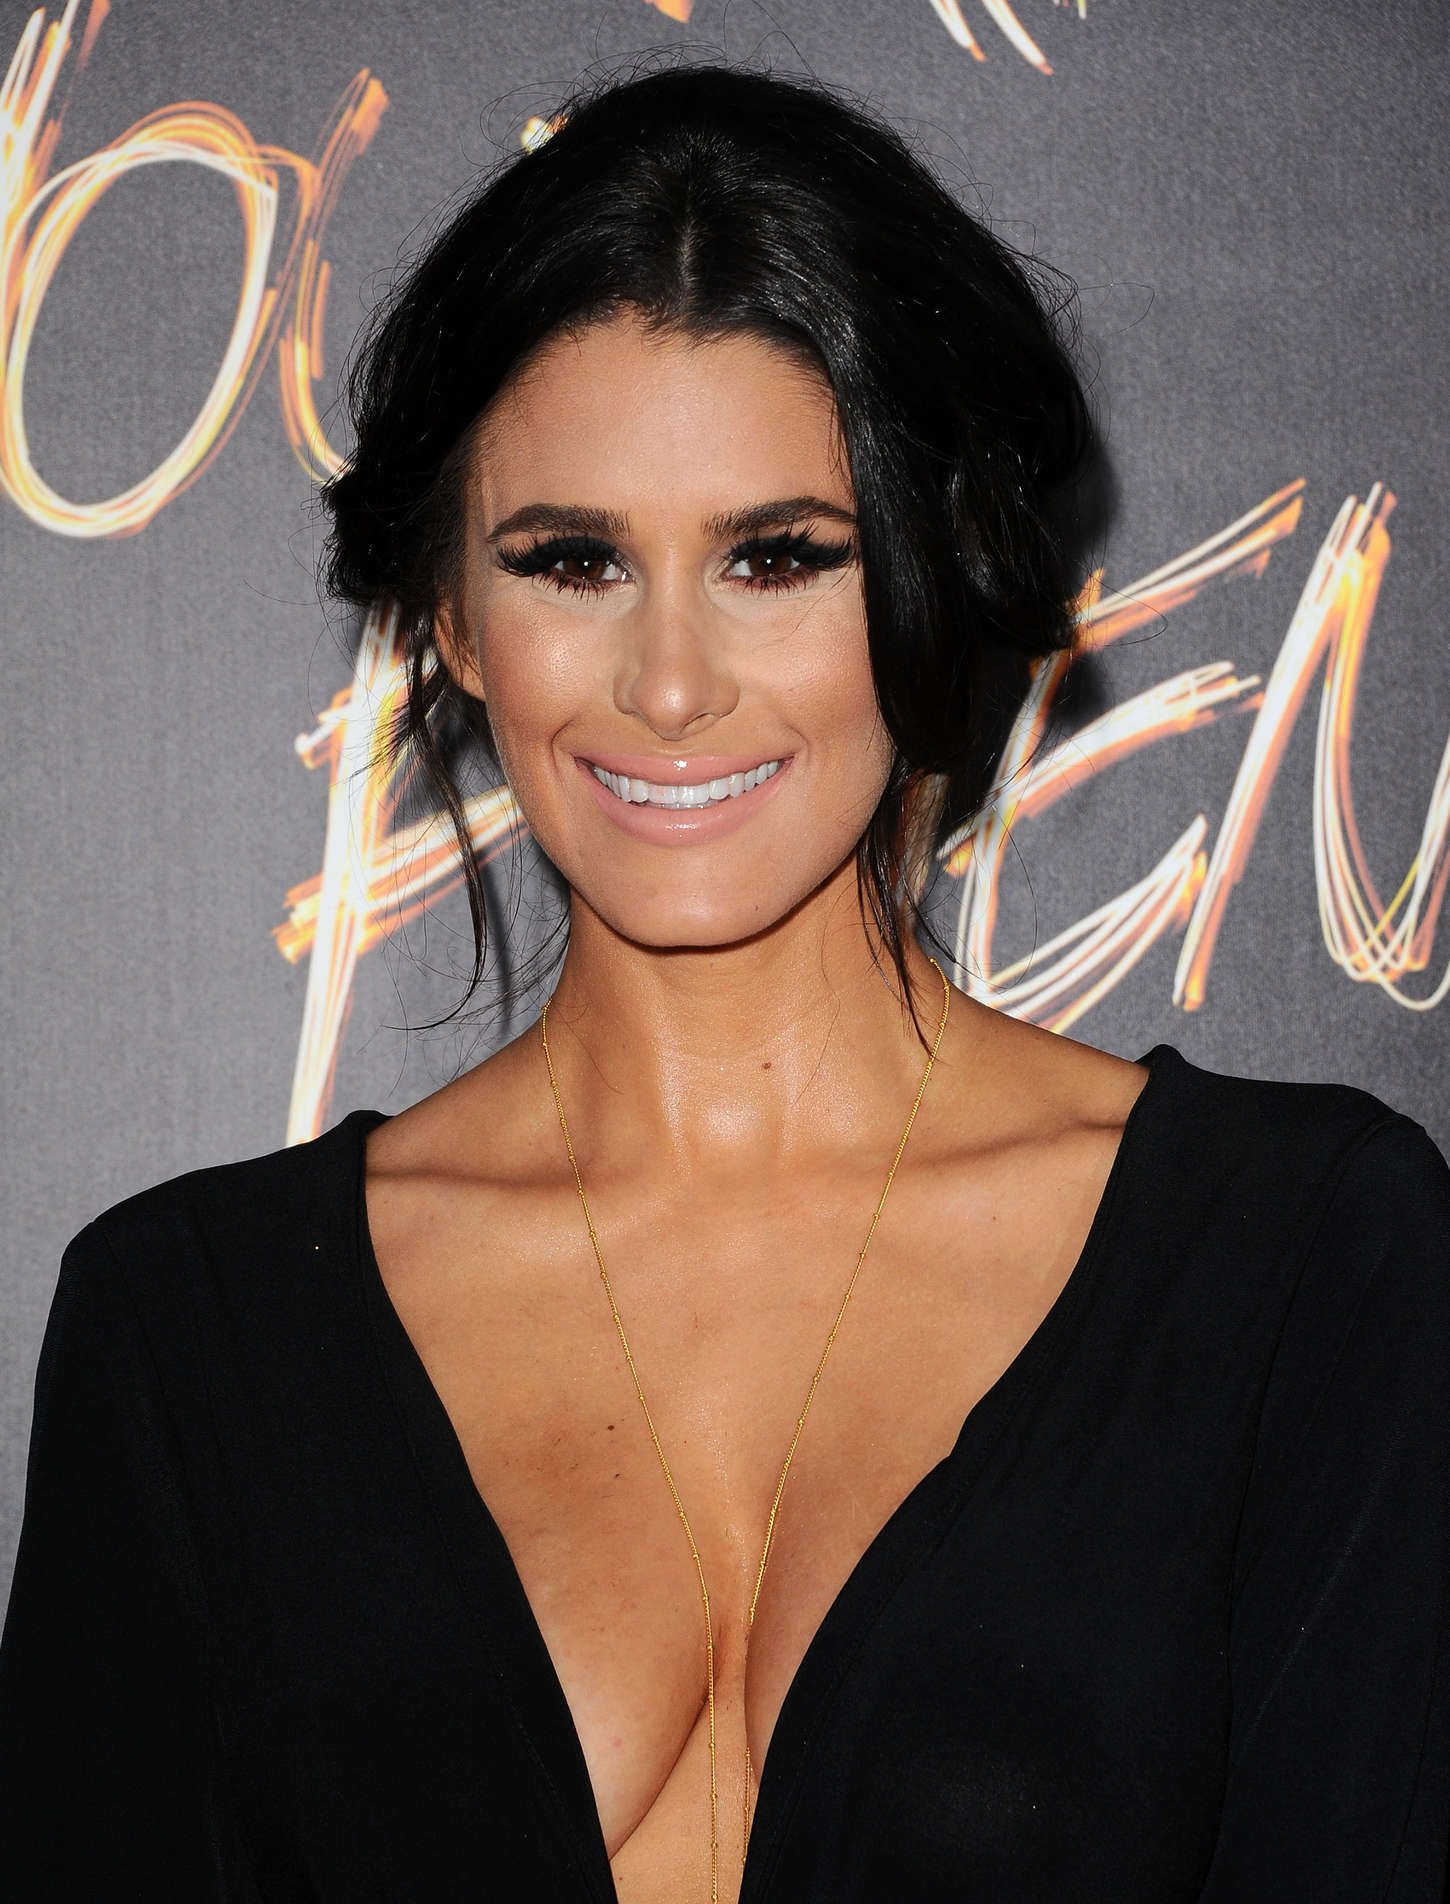 Brittany Furlan: We Are Your Friends LA Premiere -06 ... Brittany Furlan